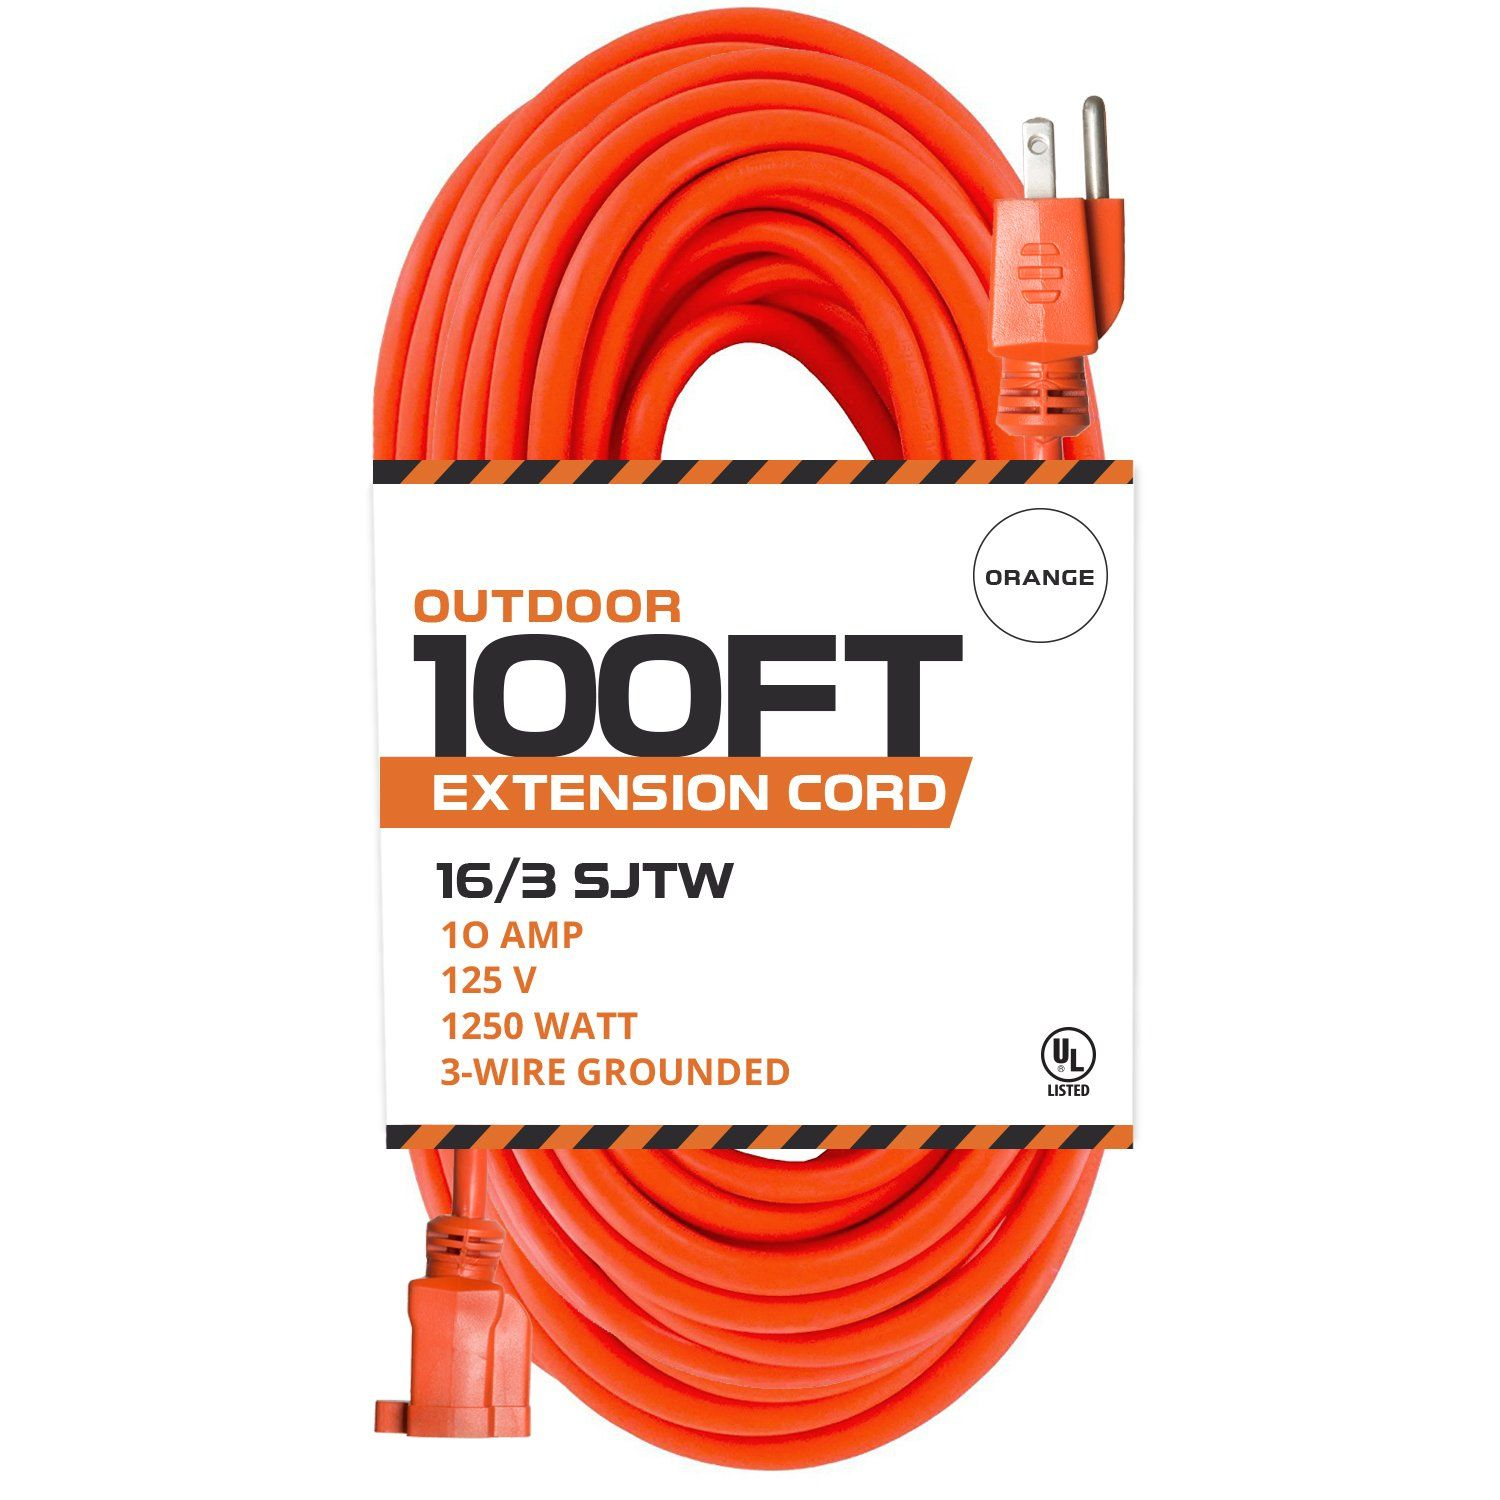 100 Ft Orange Extension Cord 16 3 Sjtw Heavy Duty Outdoor Extension Cable With 3 Prong Grounded Plug For Safe Extension Cord Extension Cable Major Appliances